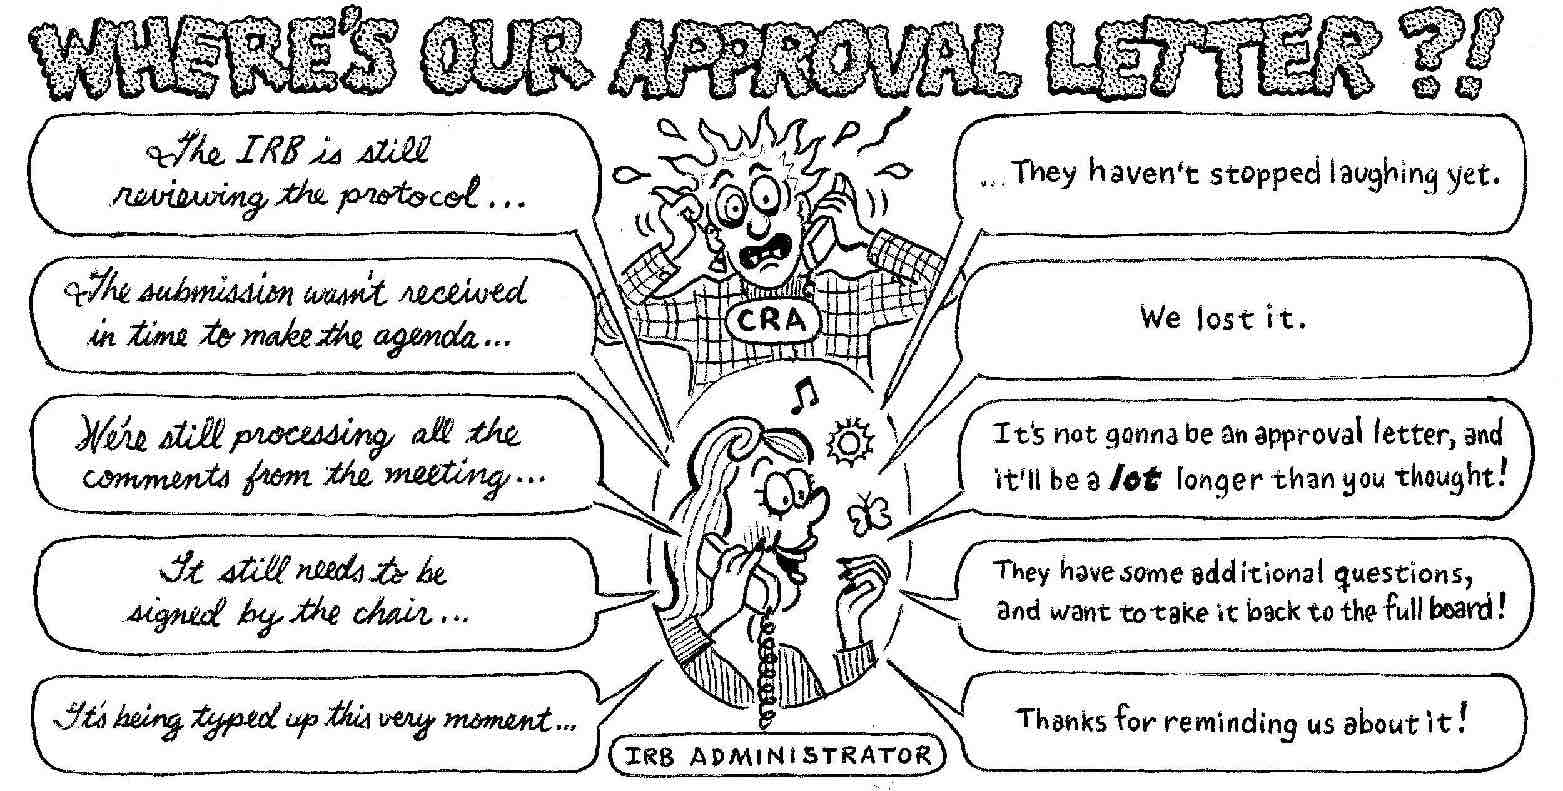 A funny cartoon about the reasons a review feedback letter is late